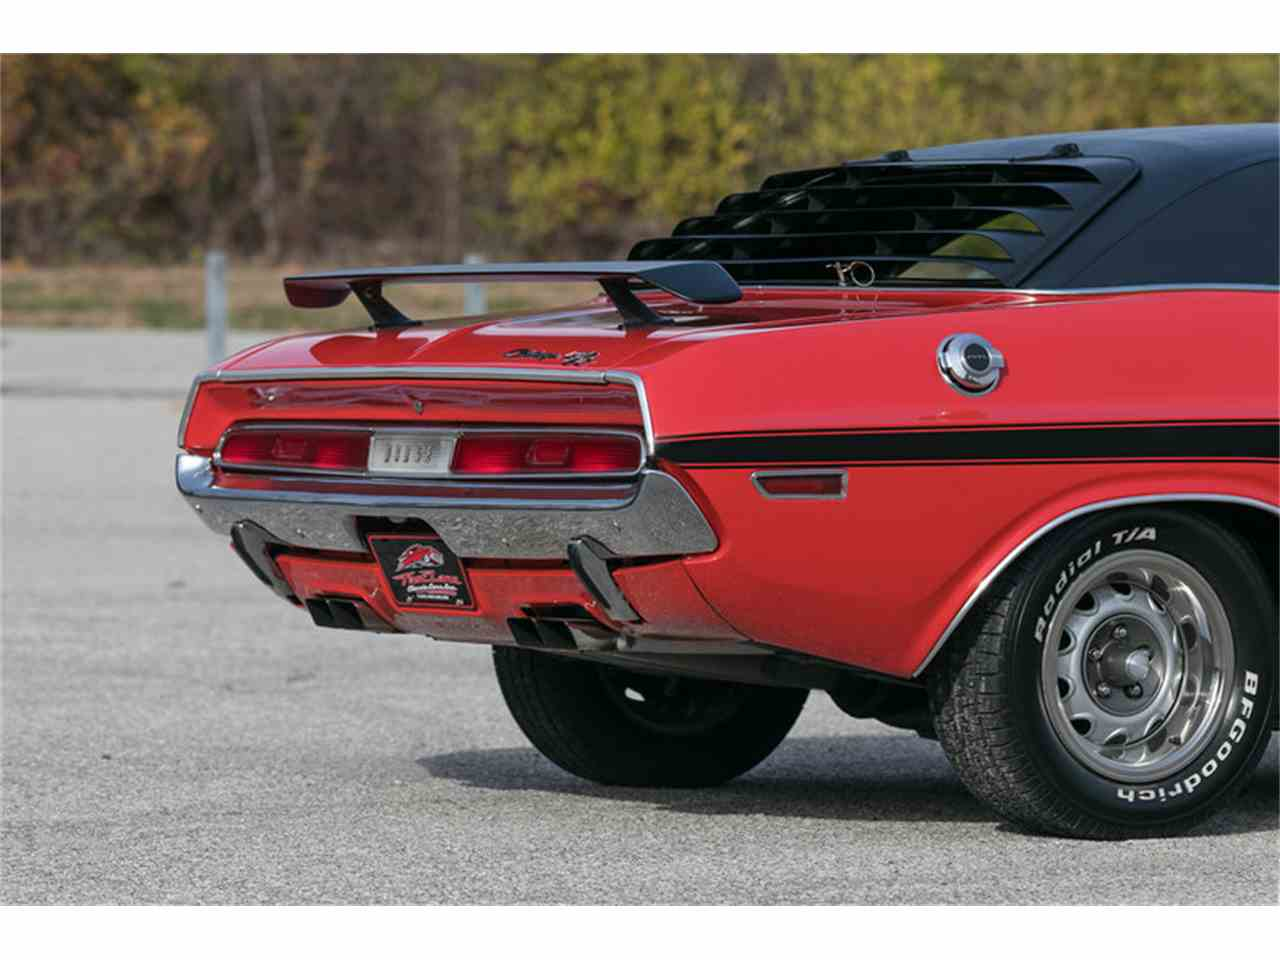 Large Picture of '70 Challenger R/T located in Missouri - $89,995.00 - MF41